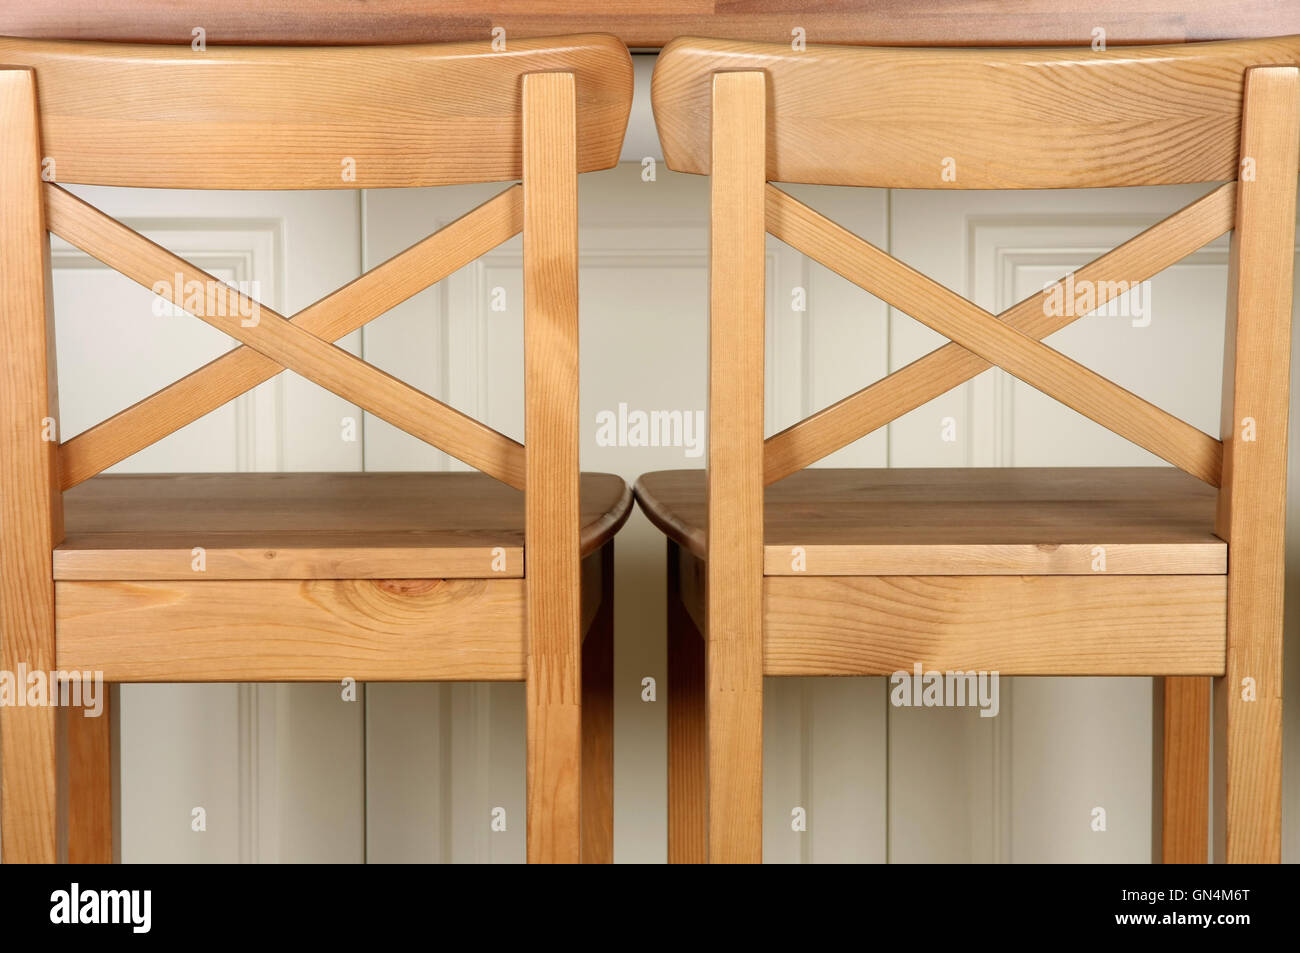 Wooden Bar Stool and kitchen counter Stock Photo   Alamy